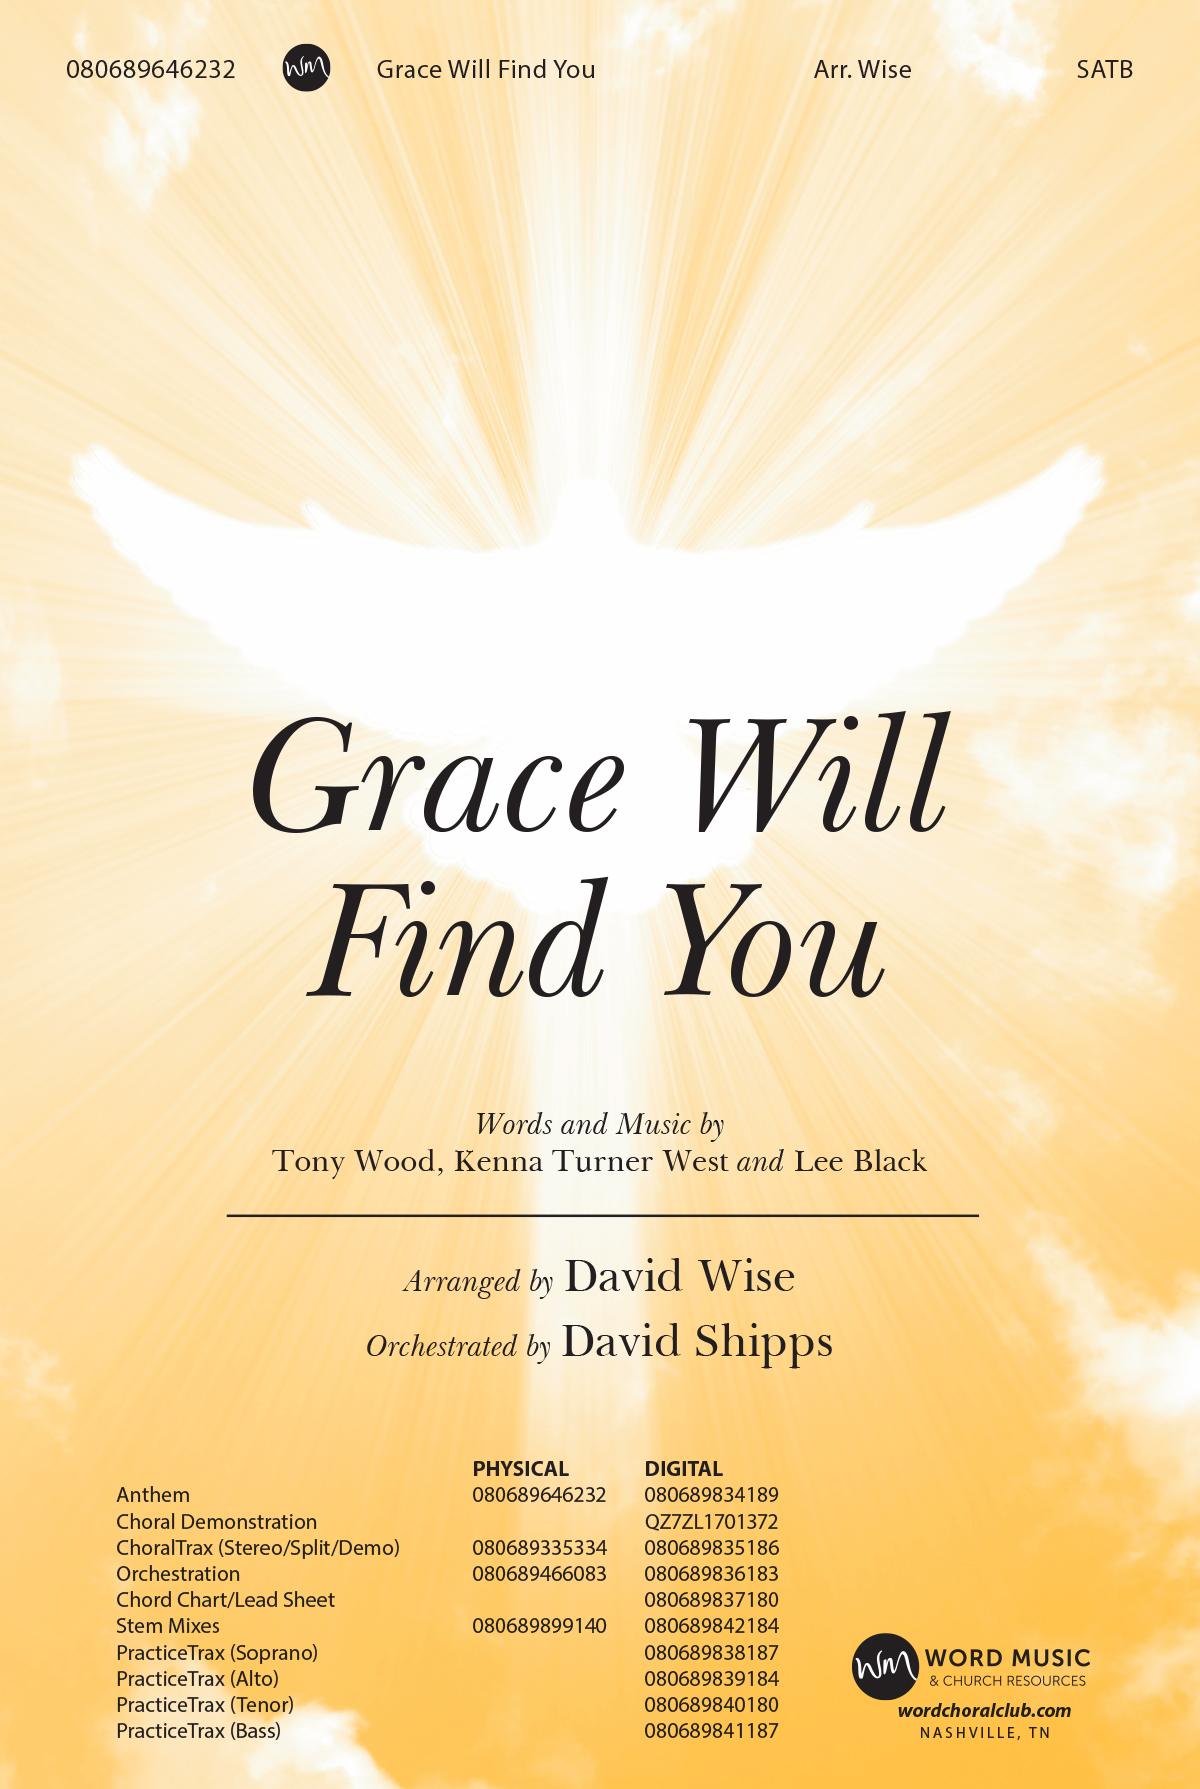 Grace Will Find You